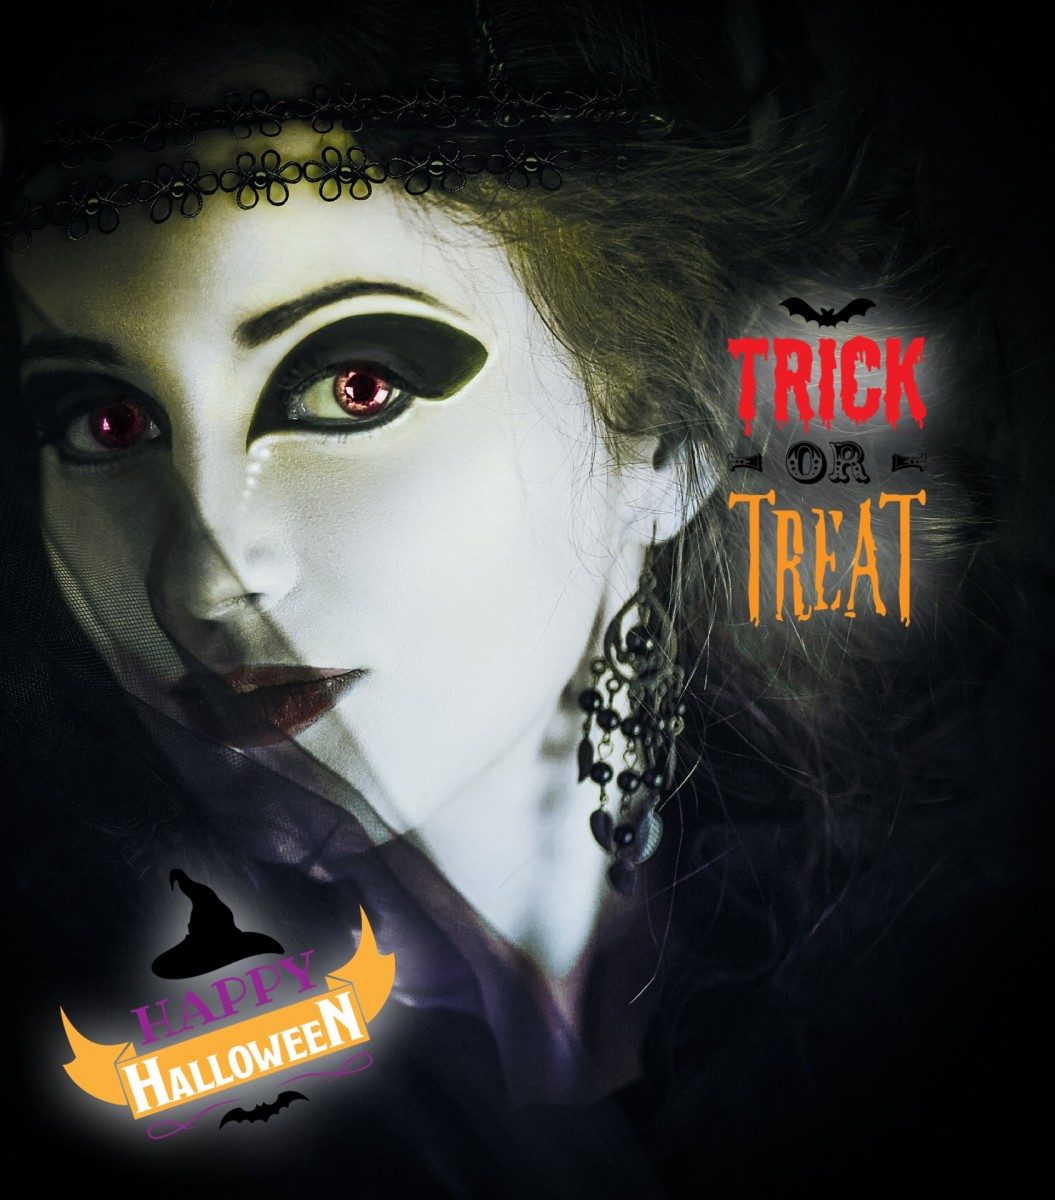 How to Create Your Own Halloween Image for Facebook